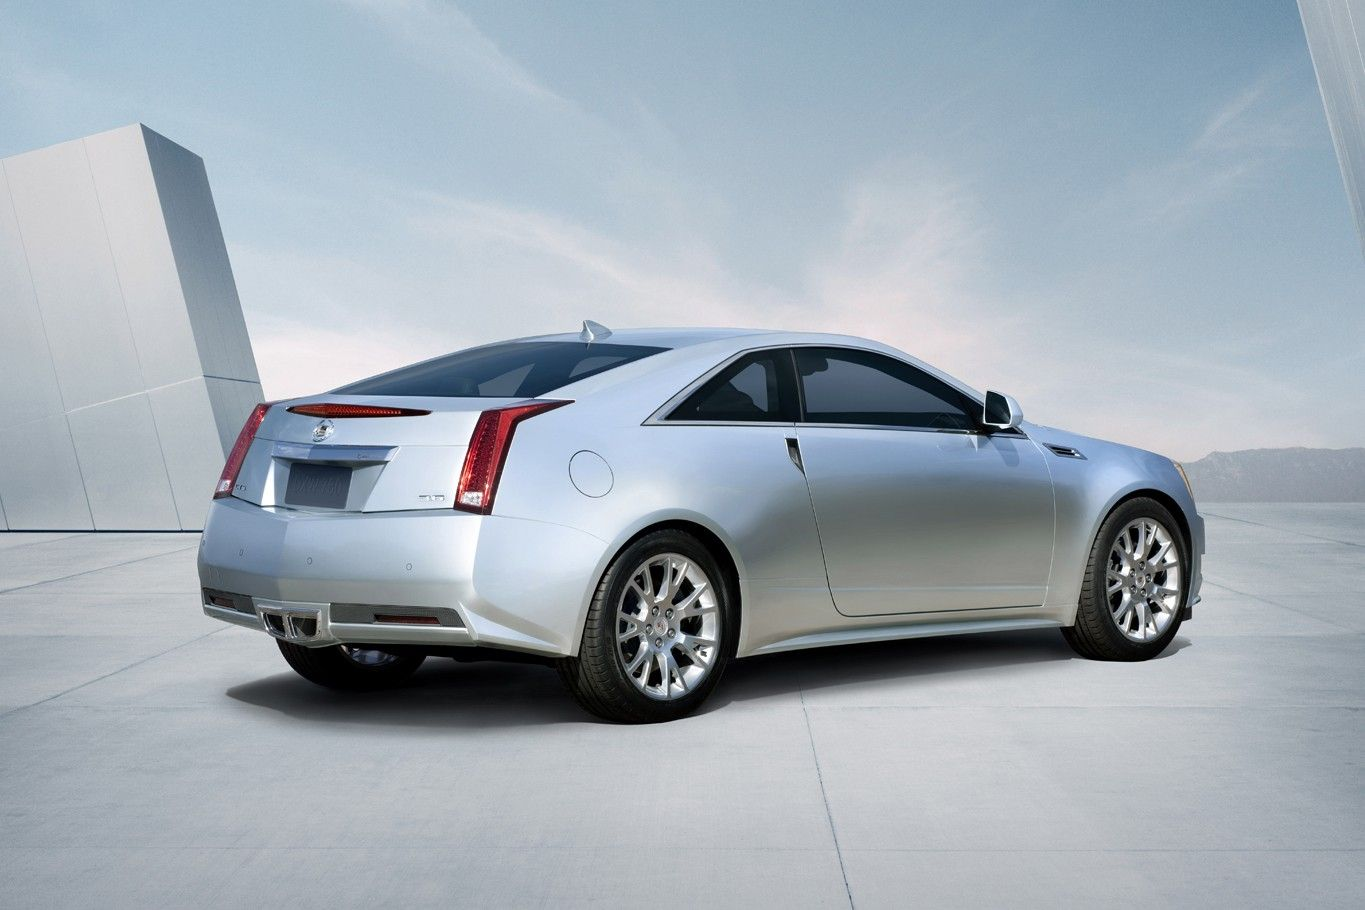 Dream-Cars-Luxury-Car-Luxury-Imports-Cadillac-CTS-V-Coupe-Most-Expensive-Cars-Bentley-Maybach-Beverly-Hills-Magazine-2